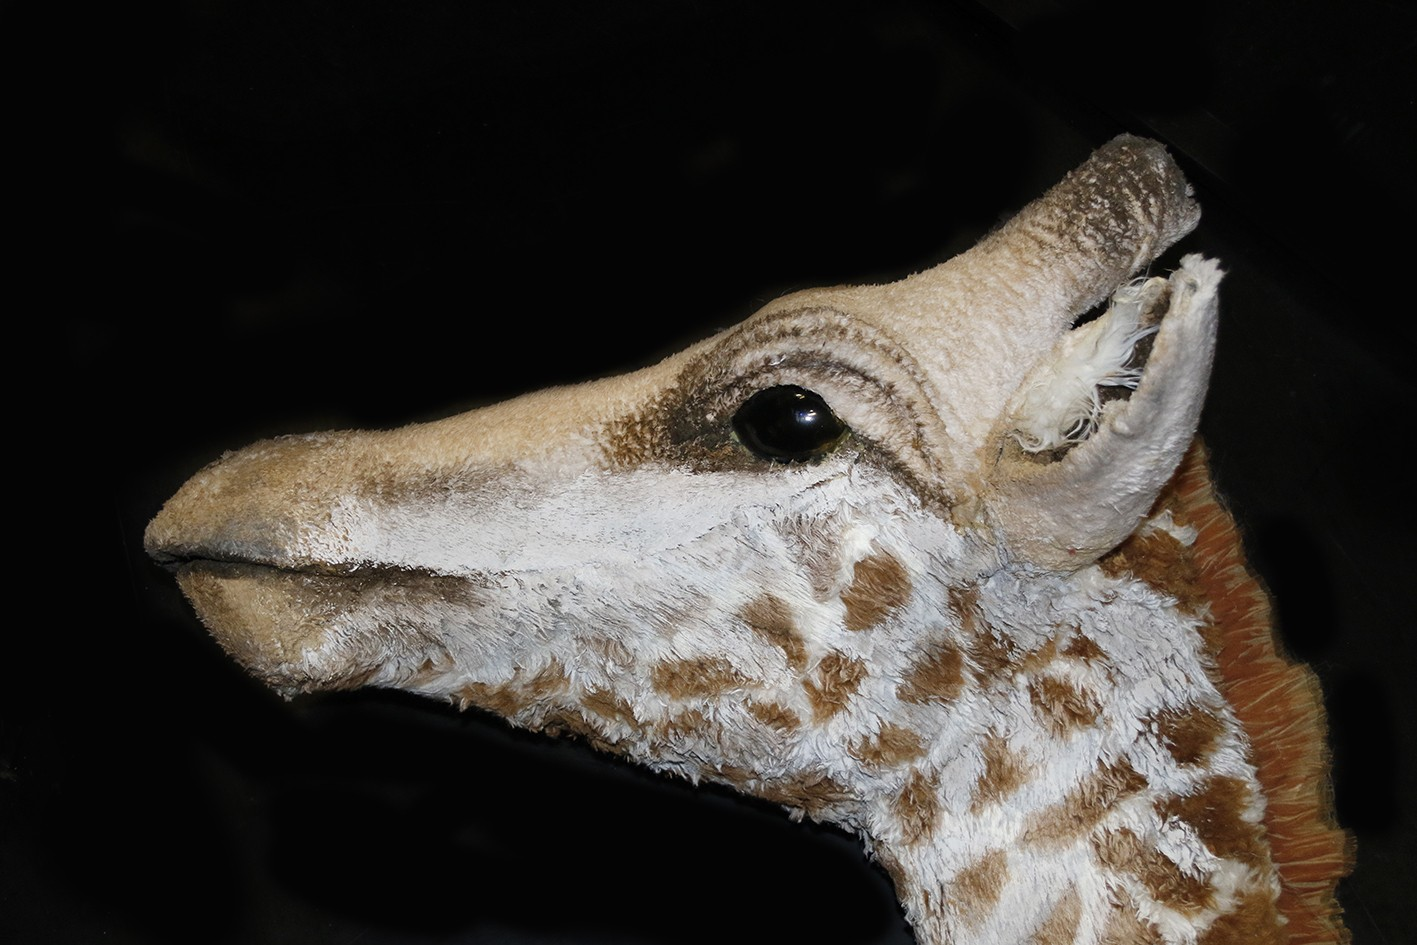 Profile; head of the giraffe